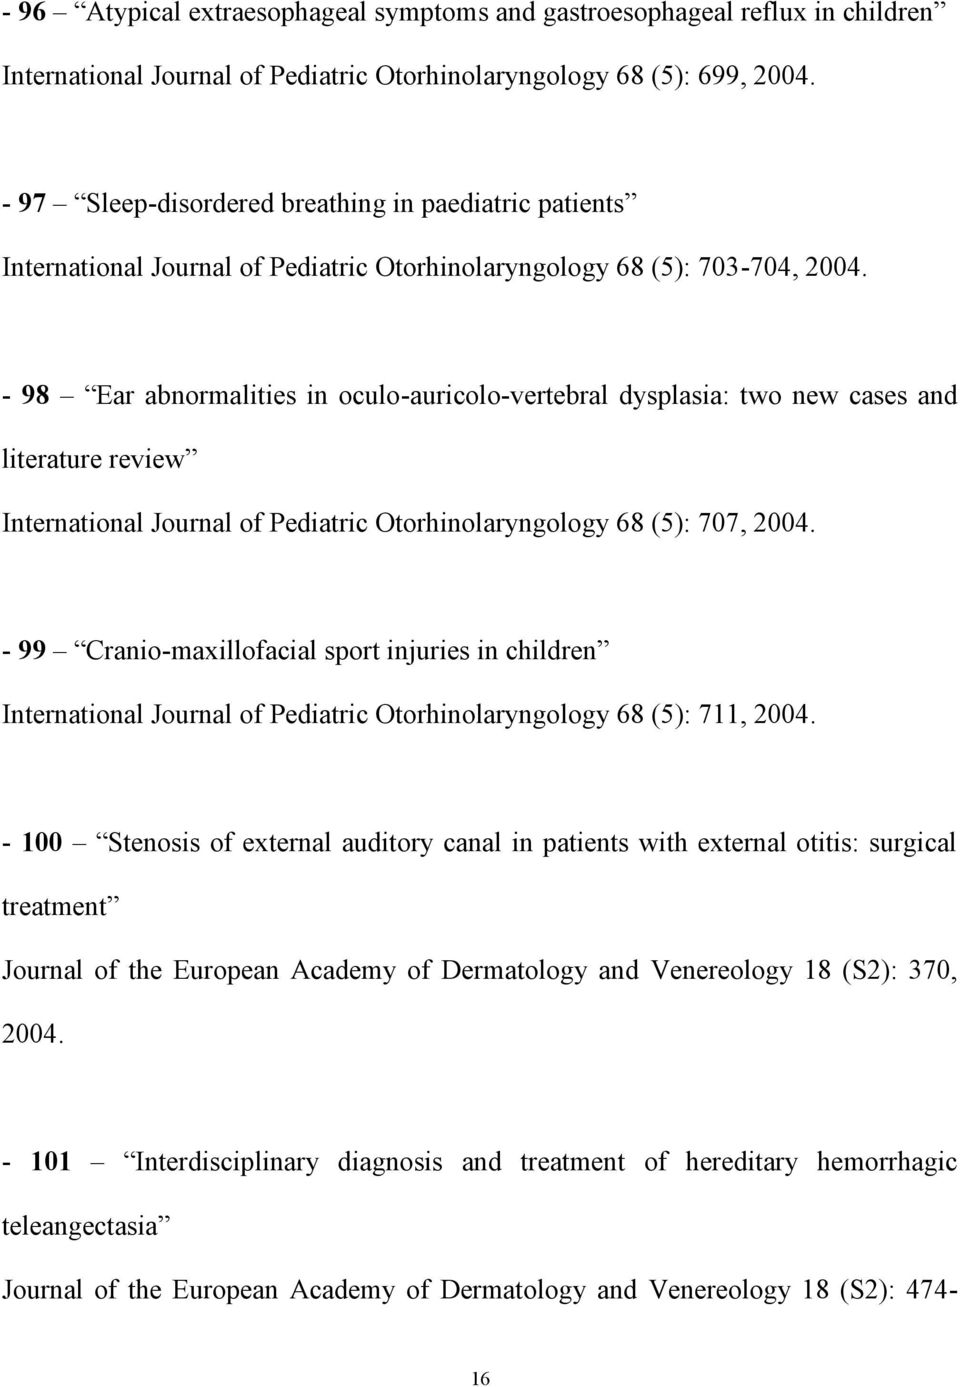 - 98 Ear abnormalities in oculo-auricolo-vertebral dysplasia: two new cases and literature review International Journal of Pediatric Otorhinolaryngology 68 (5): 707, 2004.